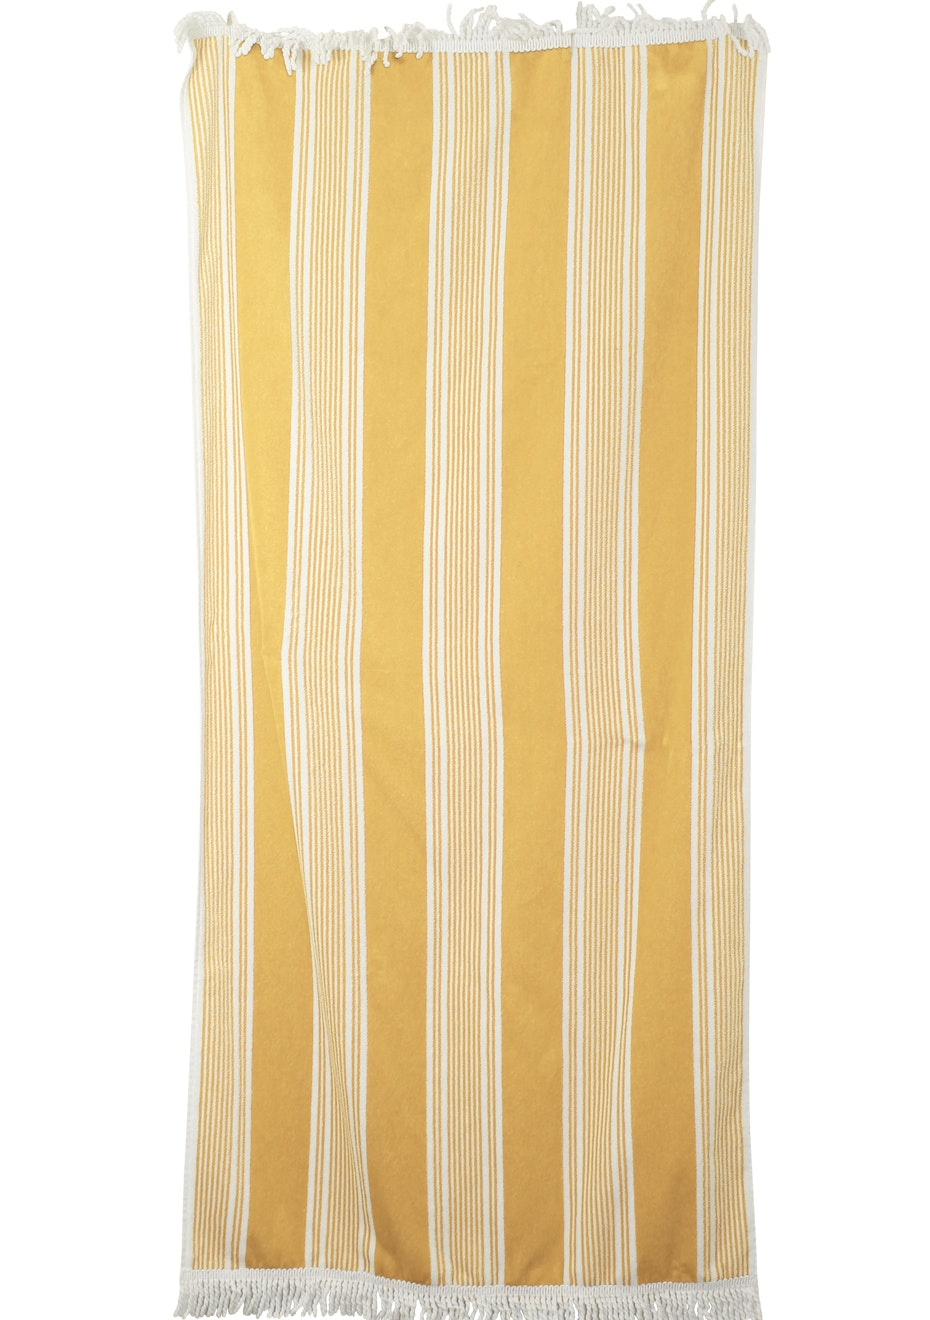 100% Cotton Velour Dobby Beach Towels with Fringe - 80x160cm - 440GSM - Canary